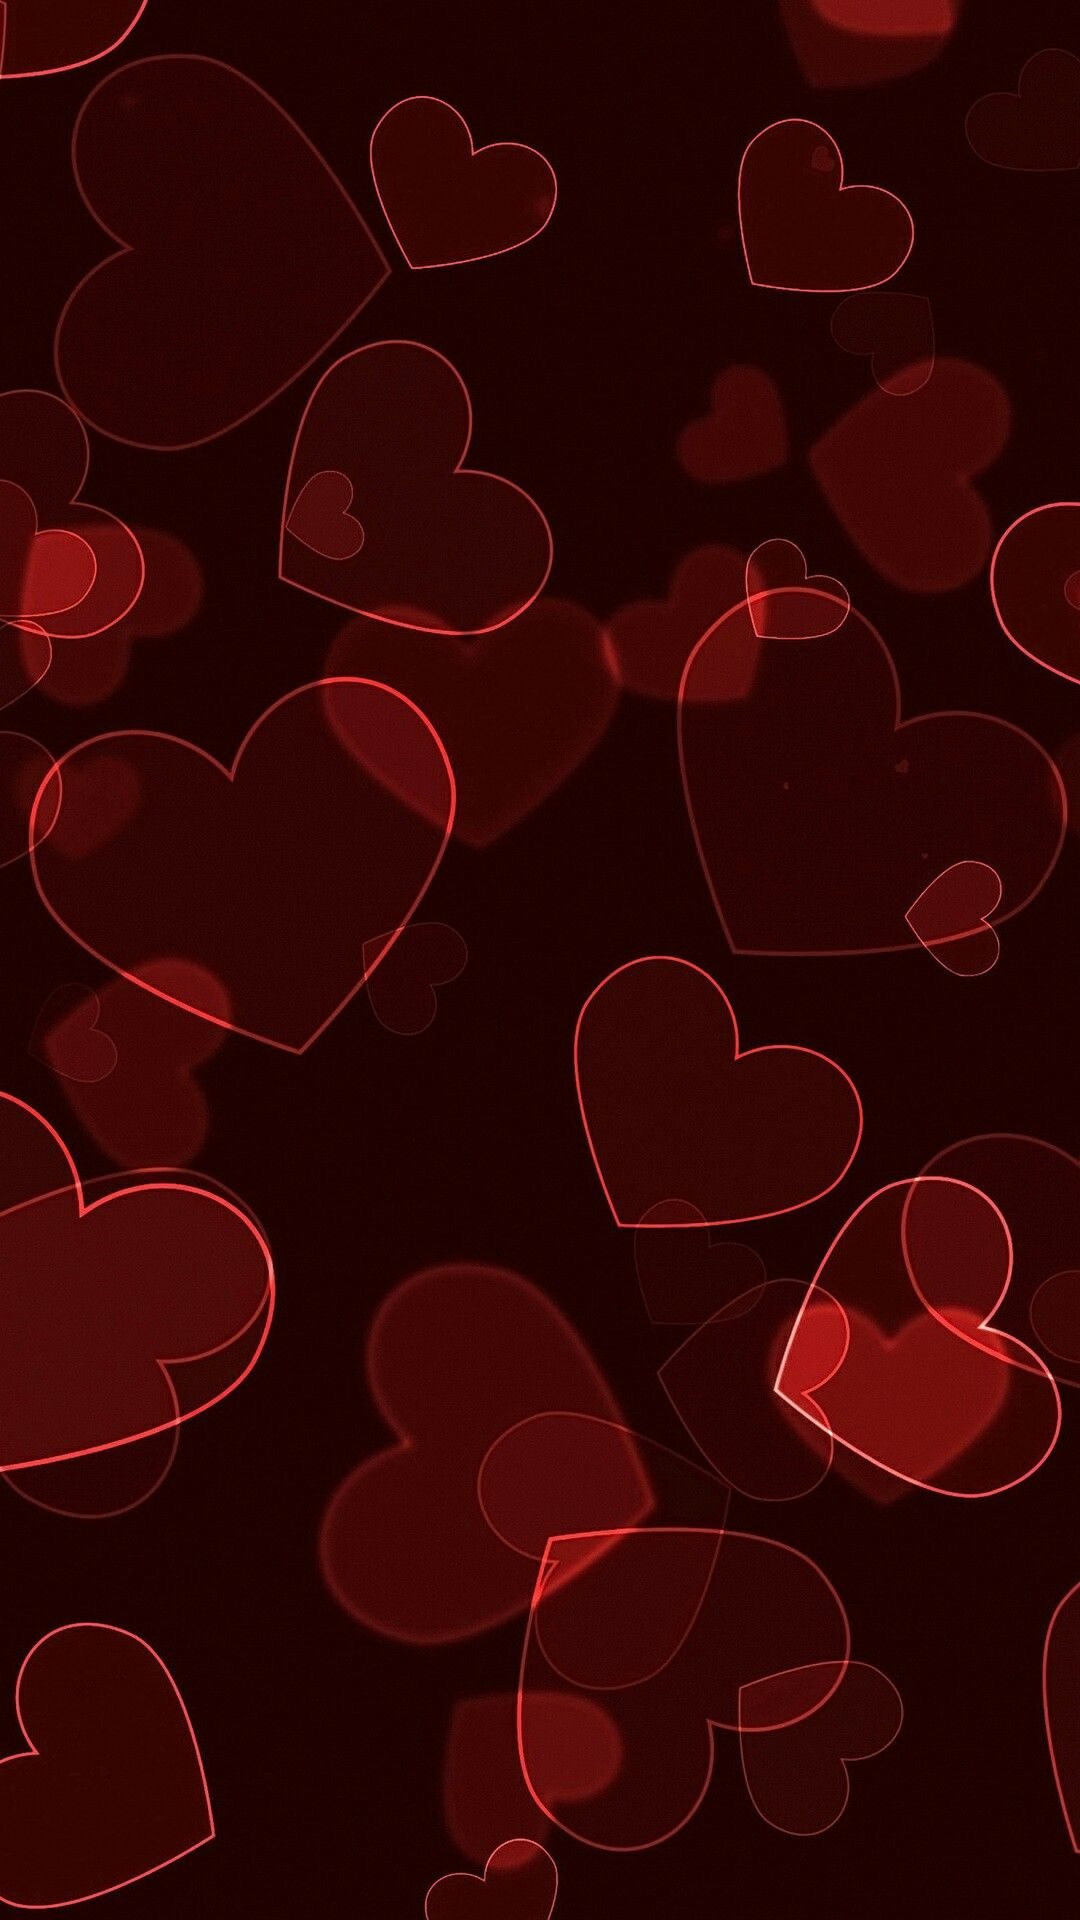 Red Hearts Valentine S Day Heart Wallpaper Valentines Wallpaper Love Wallpaper